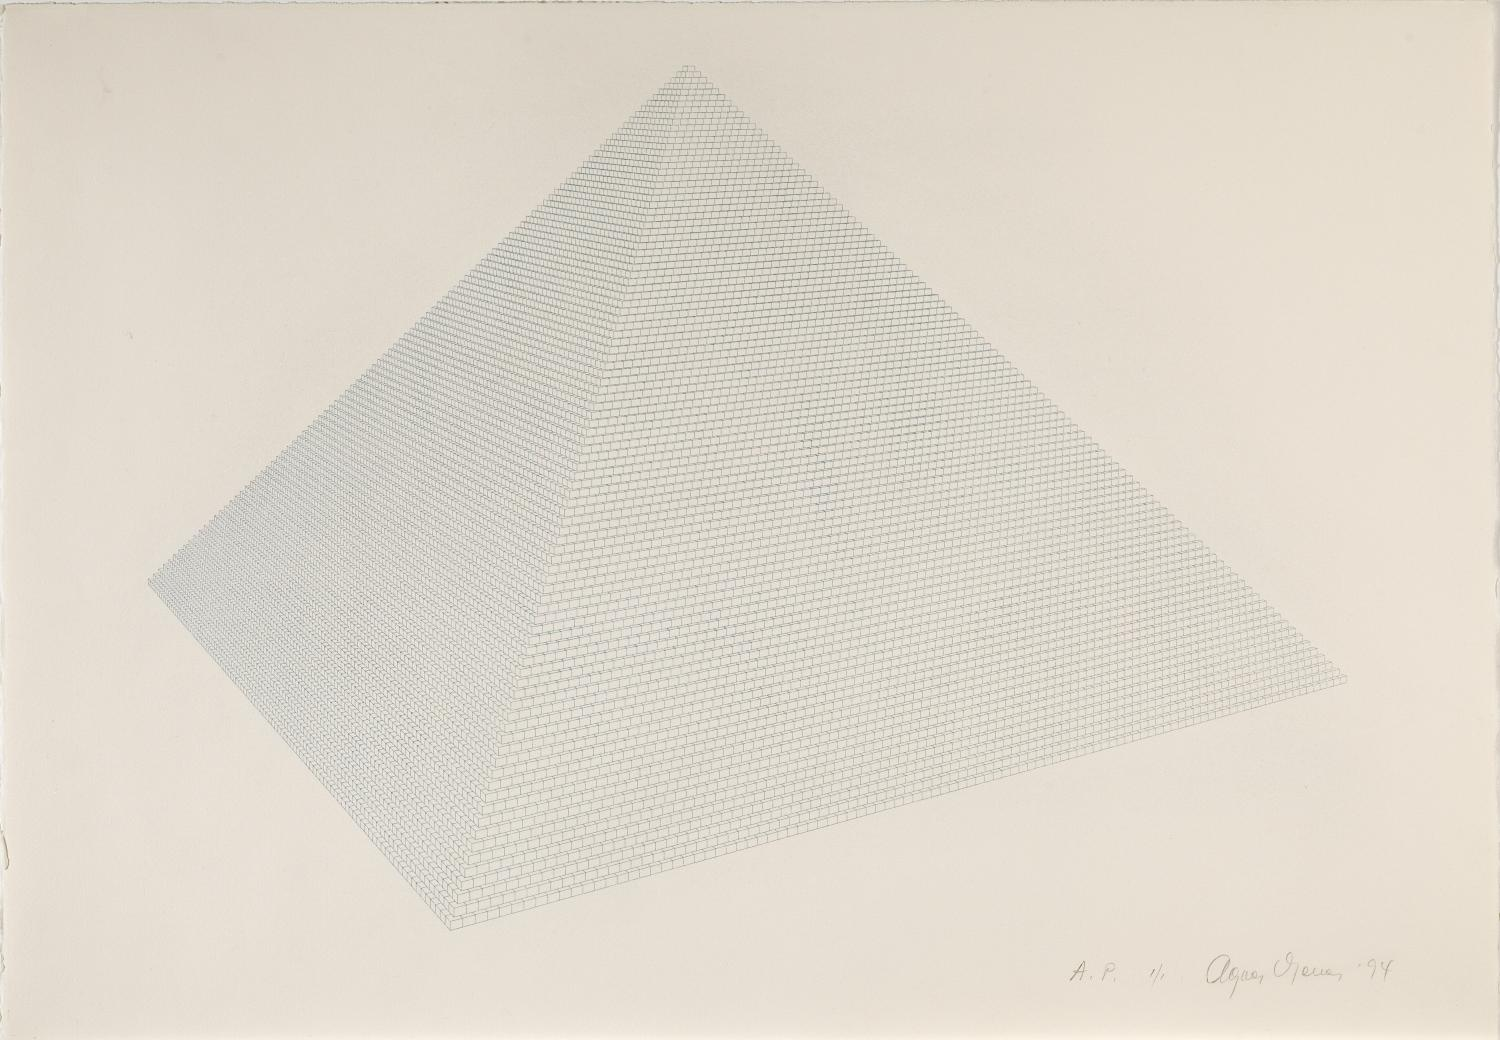 very detailed drawing of a pyramid